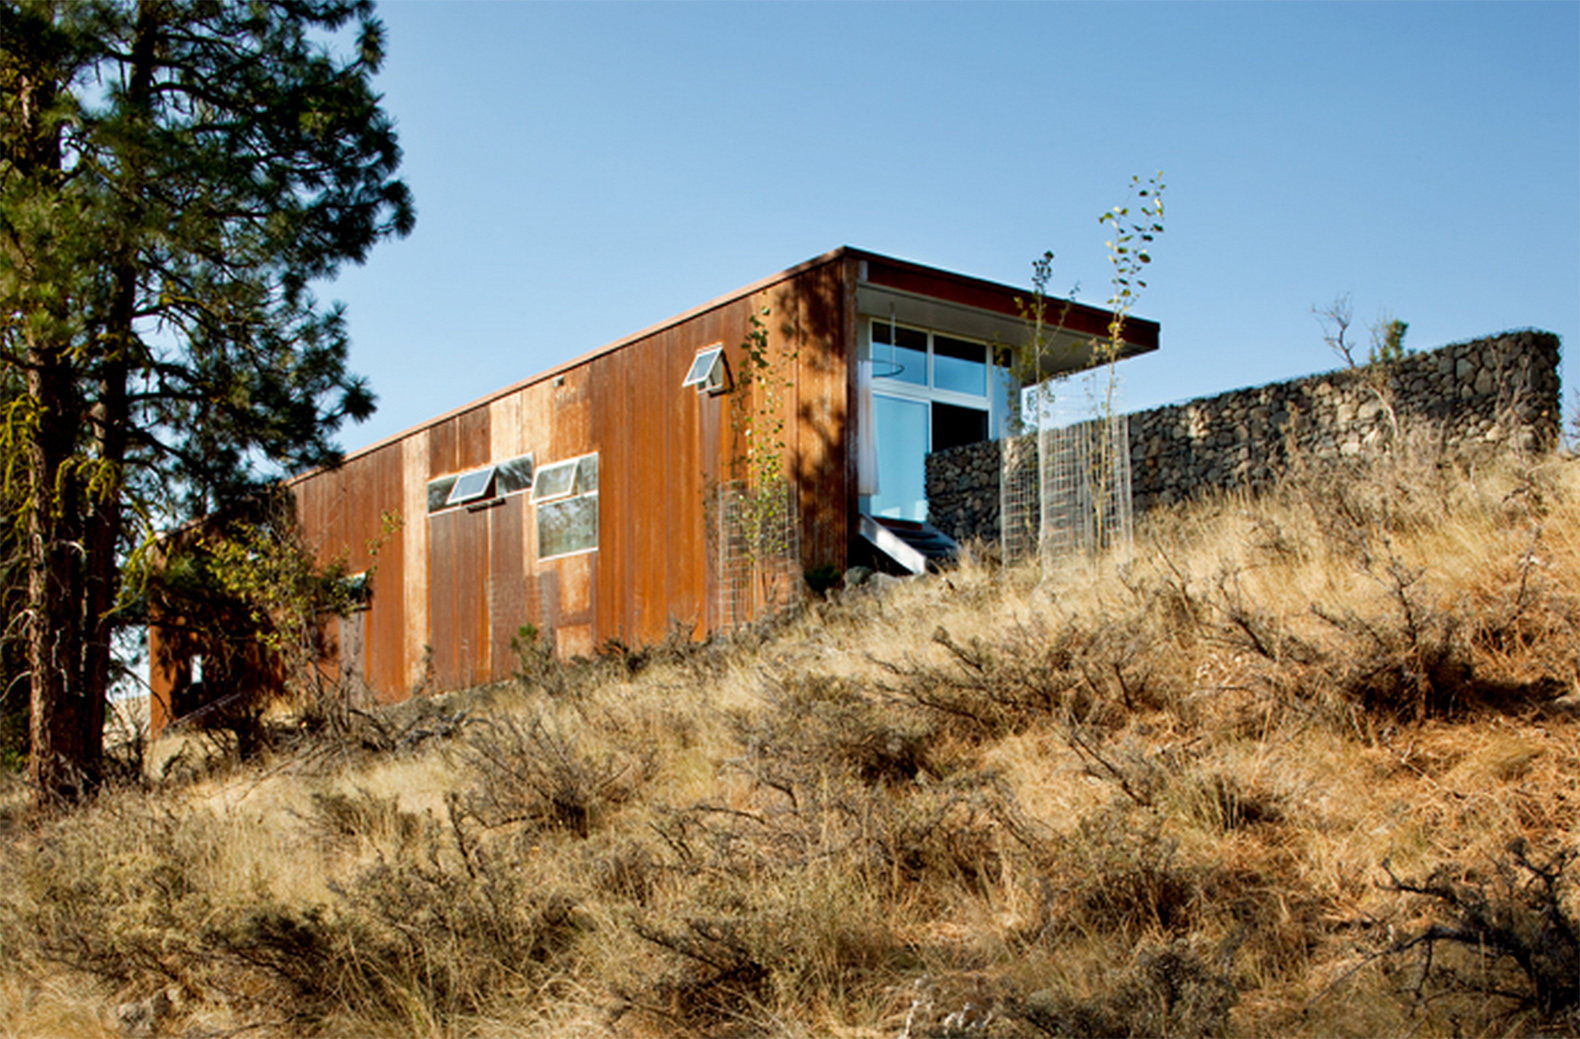 House design hilly area - The Hill House By David Coleman Is A Sustainable Modest Escape With A Big Presence